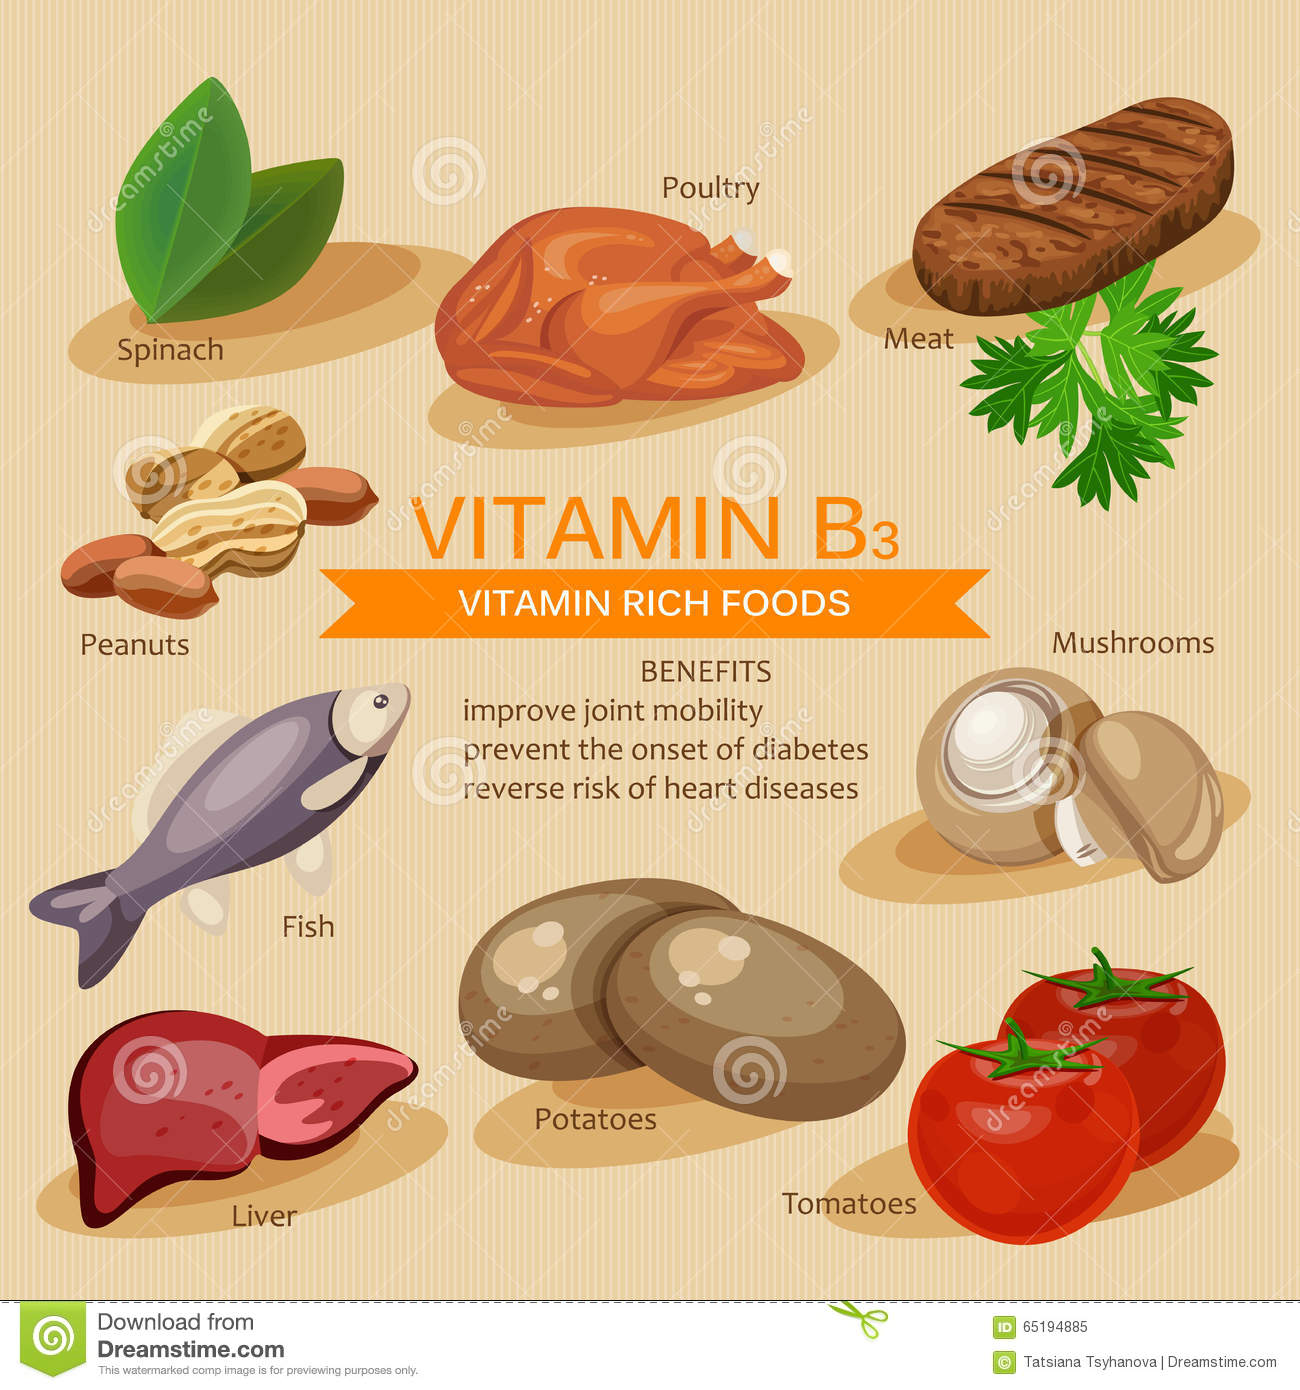 vitamin b3 vitamins and minerals foods vector flat icons. Black Bedroom Furniture Sets. Home Design Ideas